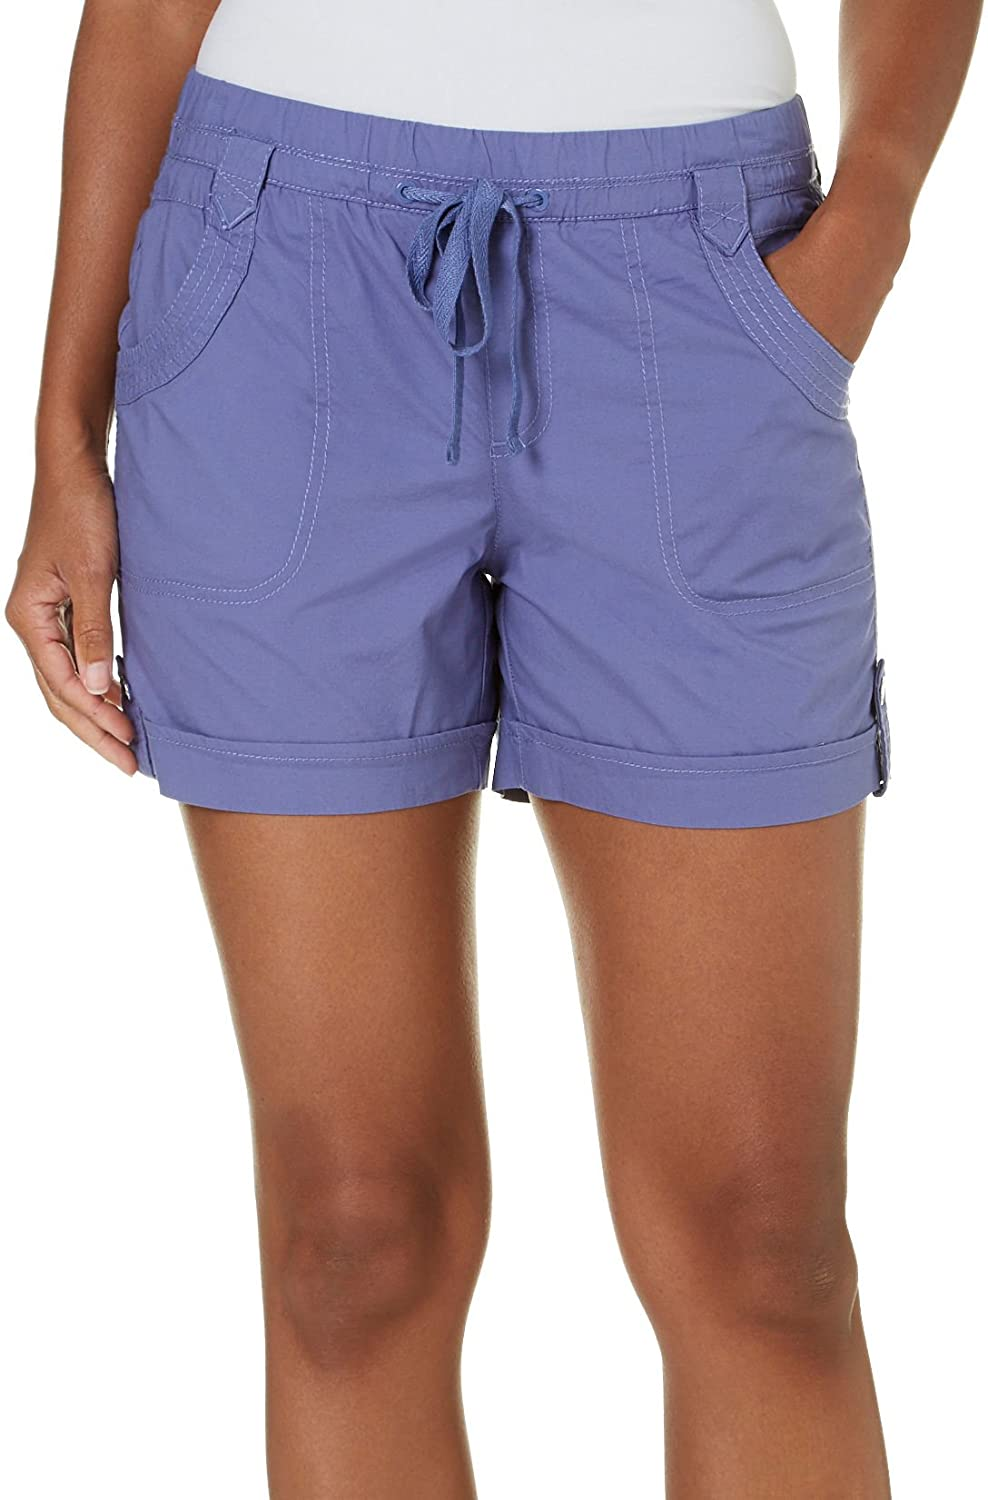 On Sale Gloria Vanderbilt Womens Ava Drawstring Shorts